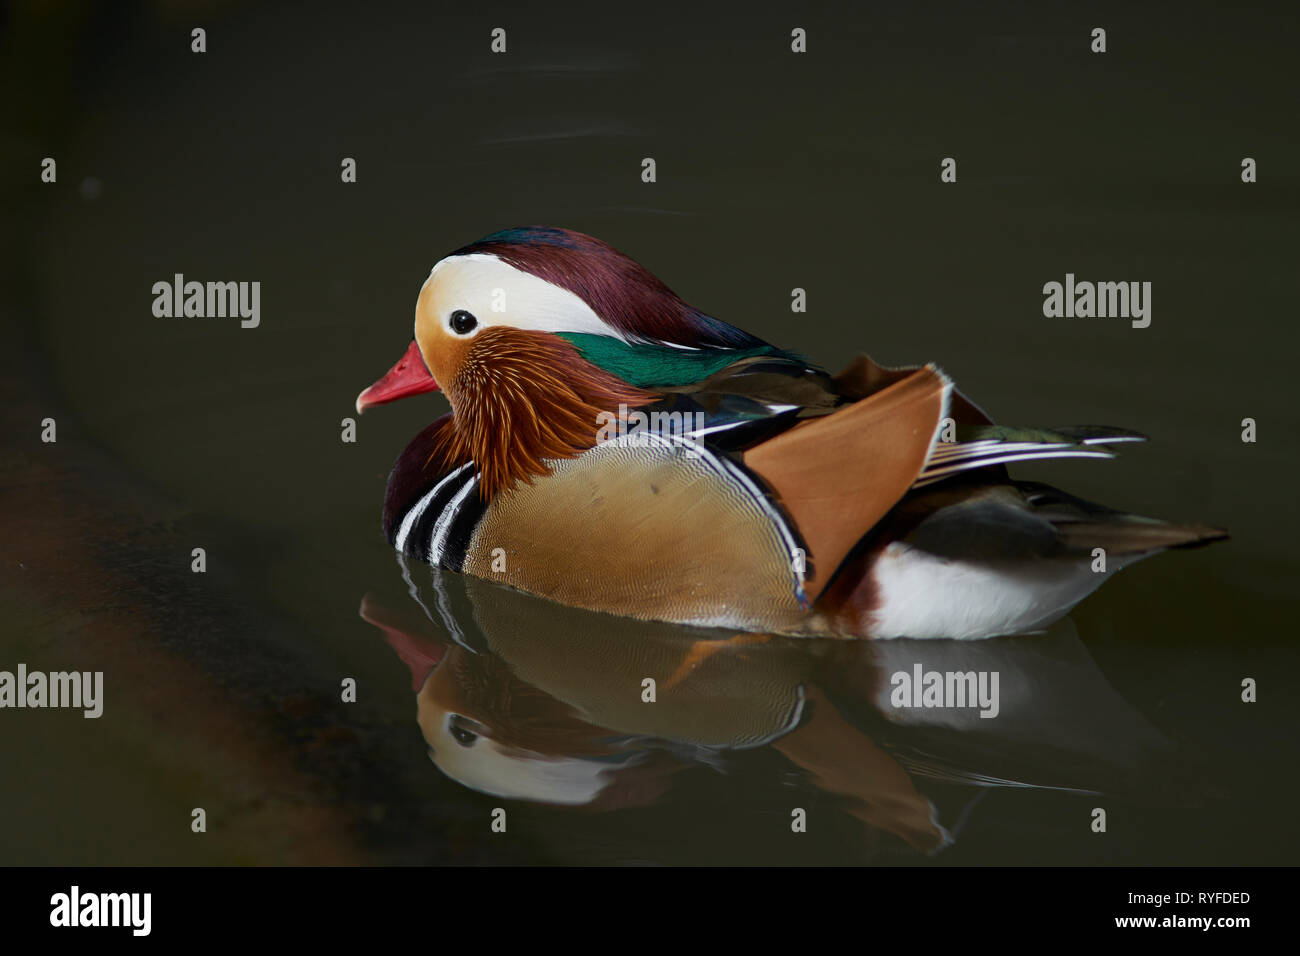 Male Mandarin Duck (Aix galericulata) showing ornate and colourful plumage. Stock Photo